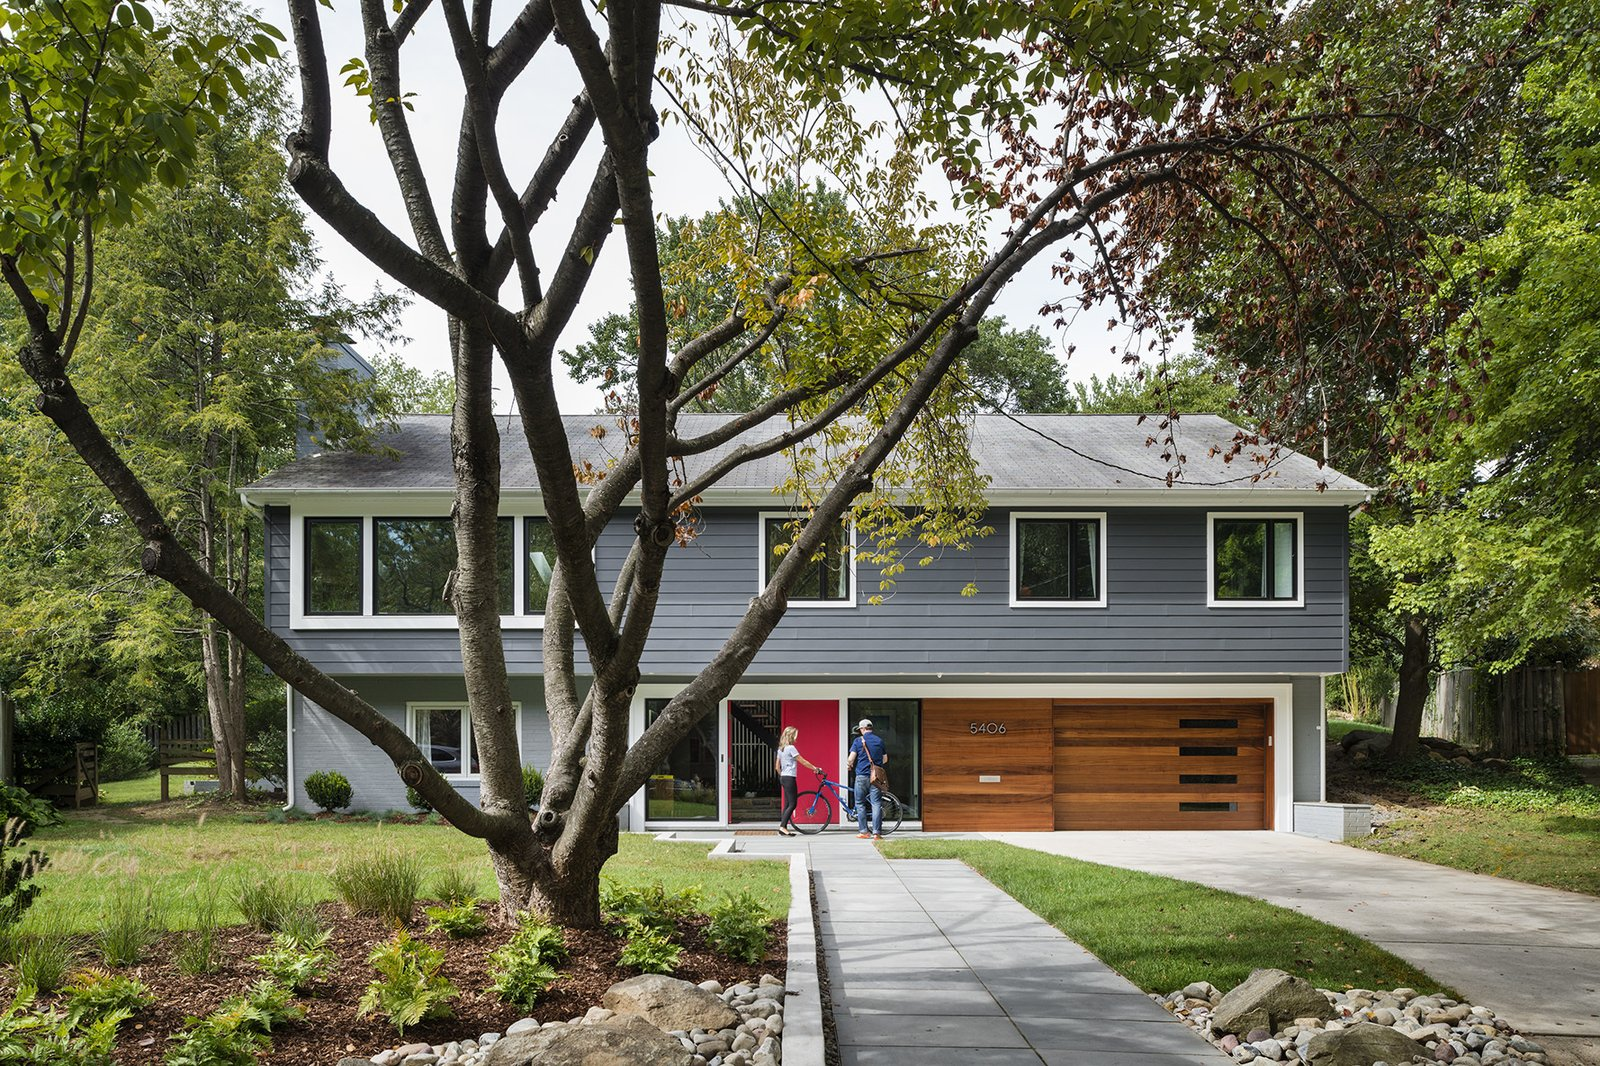 """Front Yard, Trees, Shrubs, Grass, Hardscapes, Gardens, Walkways, Exterior, House, and Wood """"We looked at so many colonials and couldn't imagine what we'd do with all the tiny rooms,"""" says Dianne Bruning, who with her husband, David Owen, enlisted architect Lou Balodemas to update a 1968 home outside of Chevy Chase, Maryland.  Exterior Trees Wood Photos from Minor Adjustments"""